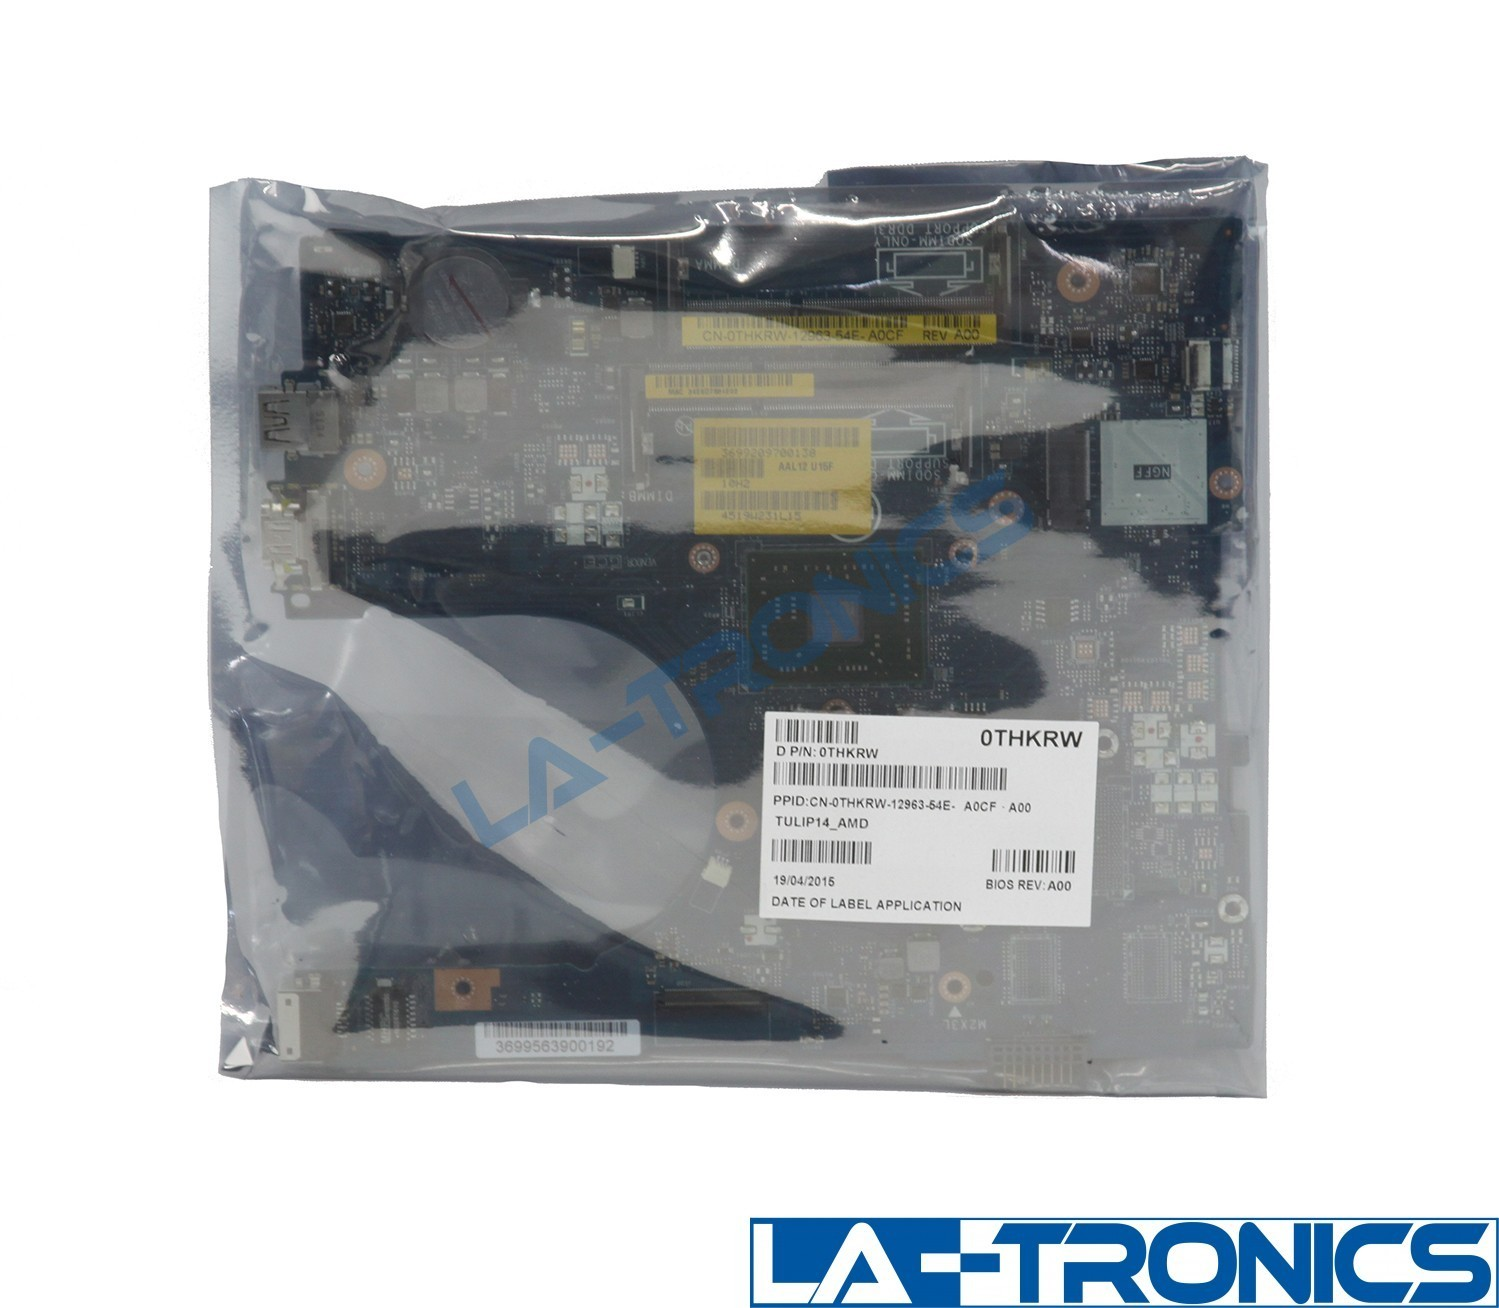 NEW Dell Inspiron 15 5555 Laptop Motherboard AMD A6-7310 2.0GHz THKRW 0THKRW